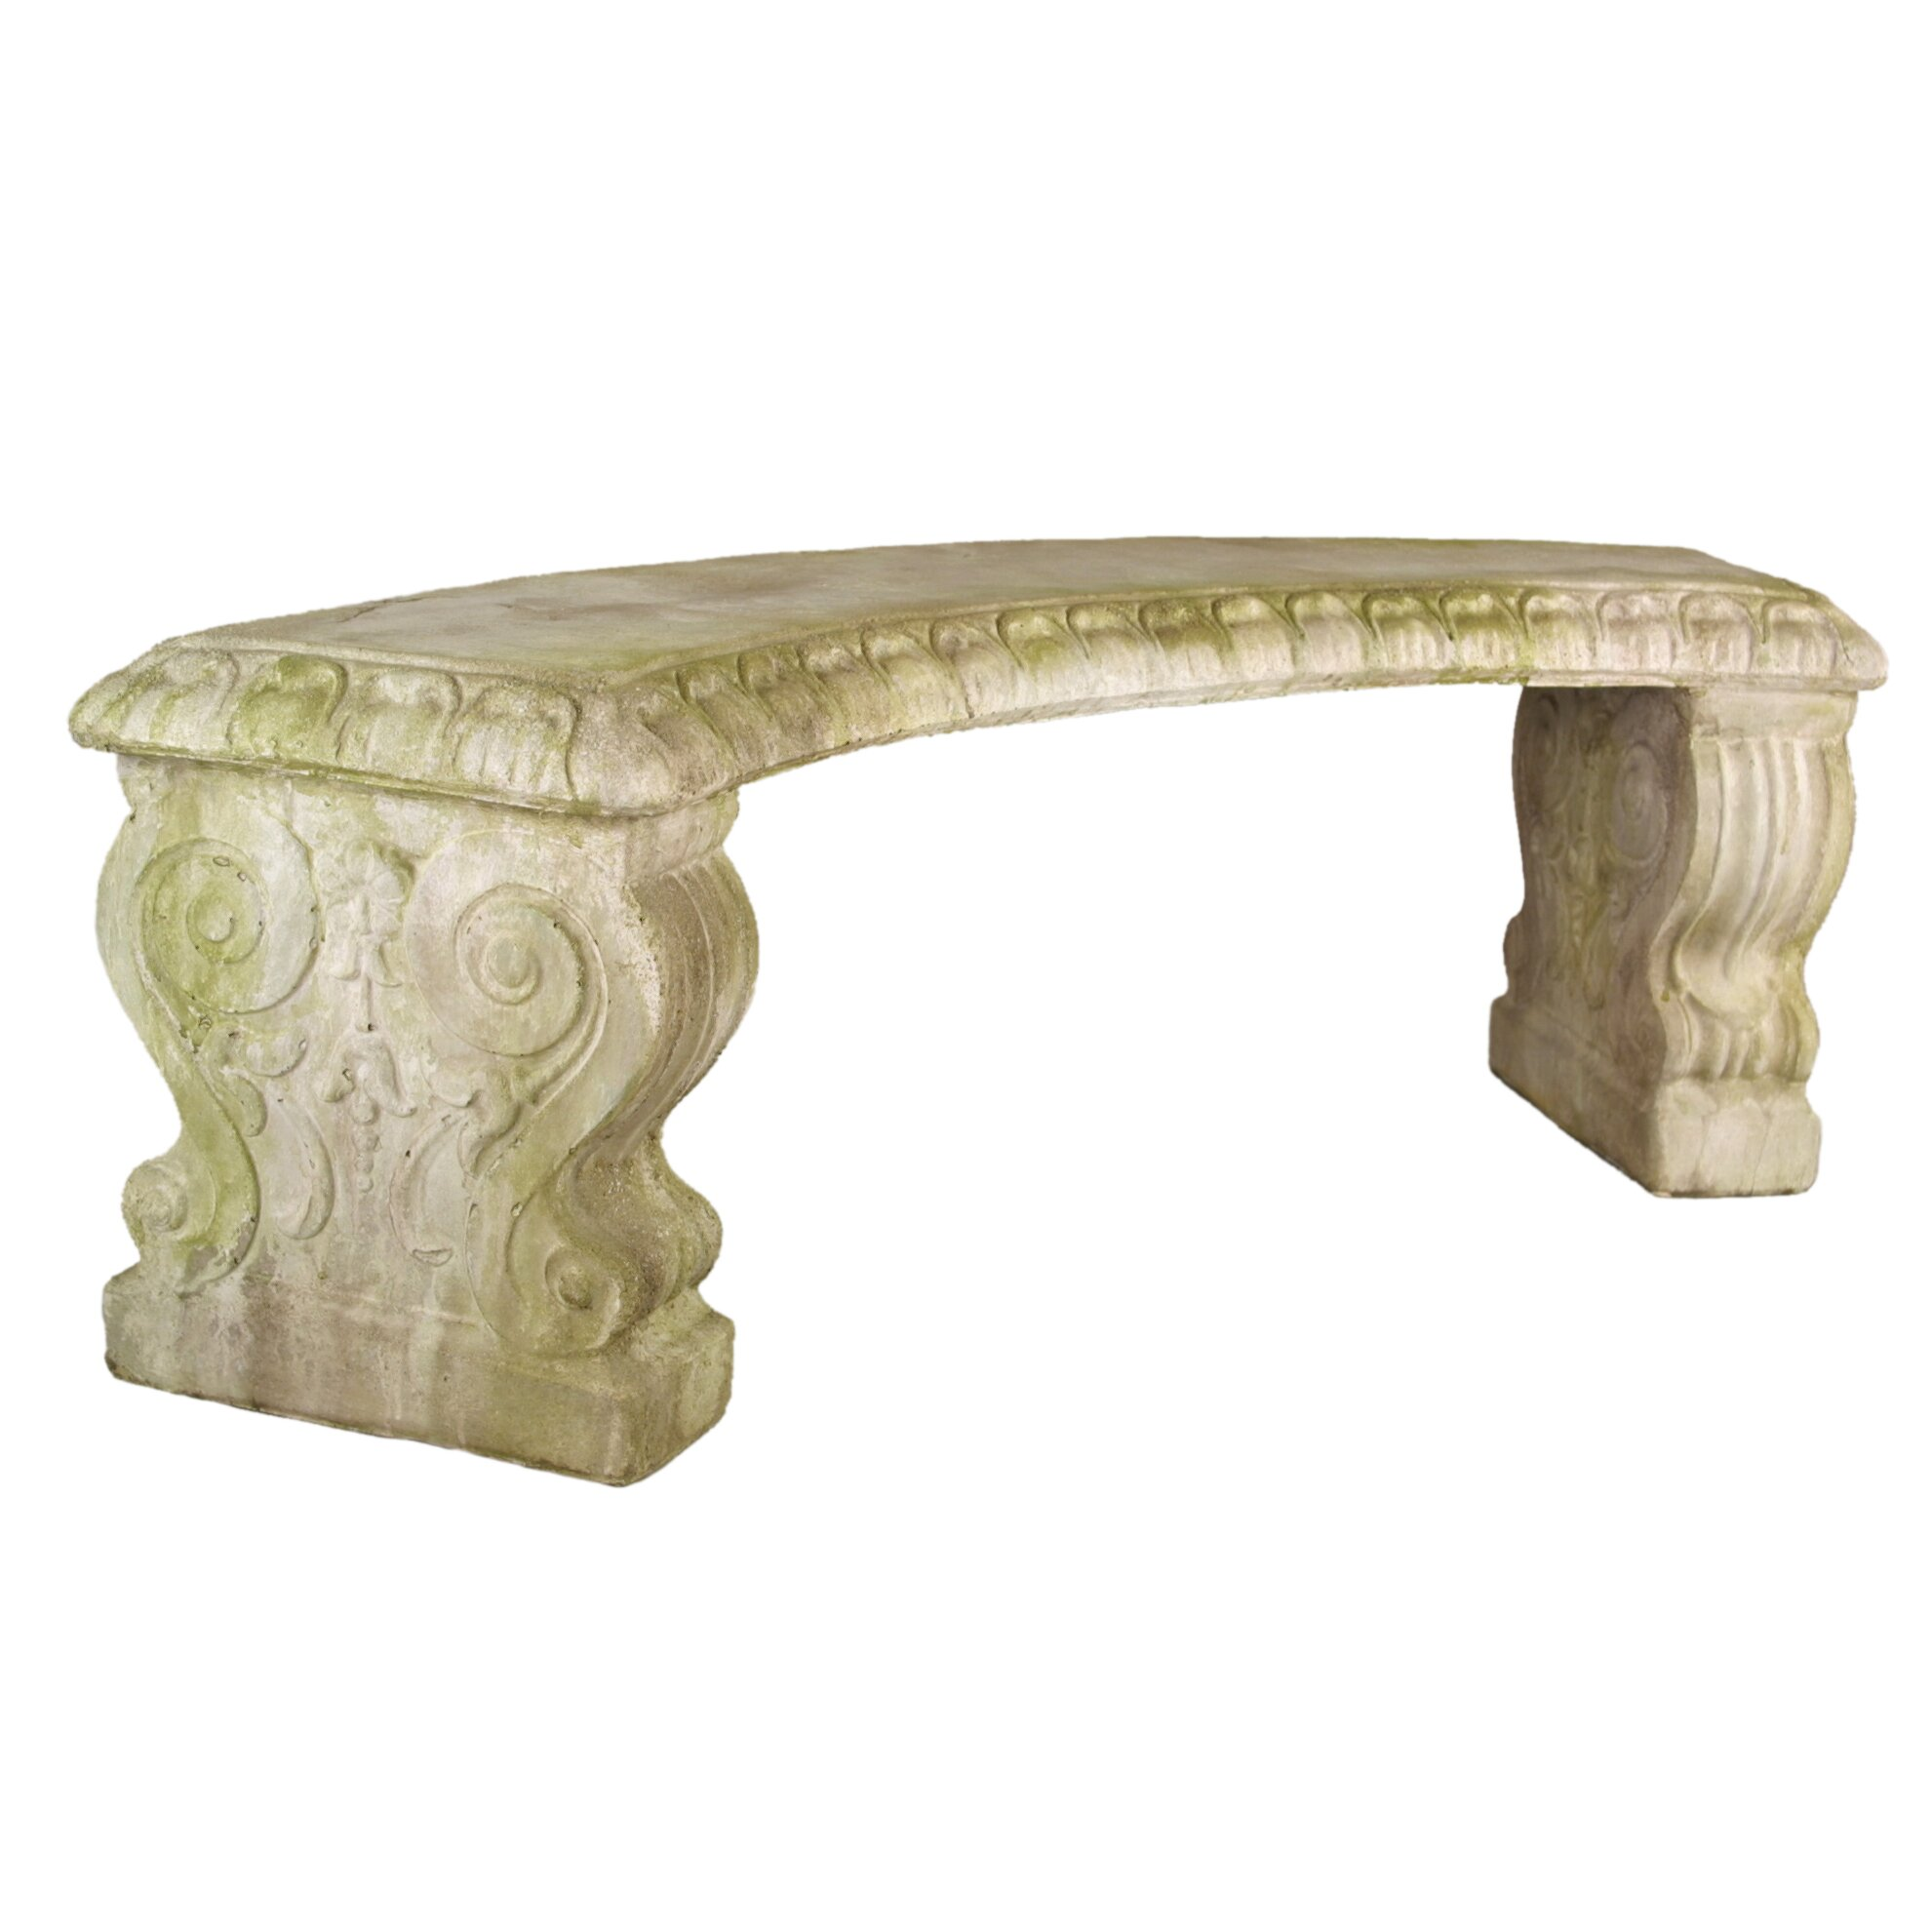 OrlandiStatuary Furniture Curved Stone Garden Bench Reviews